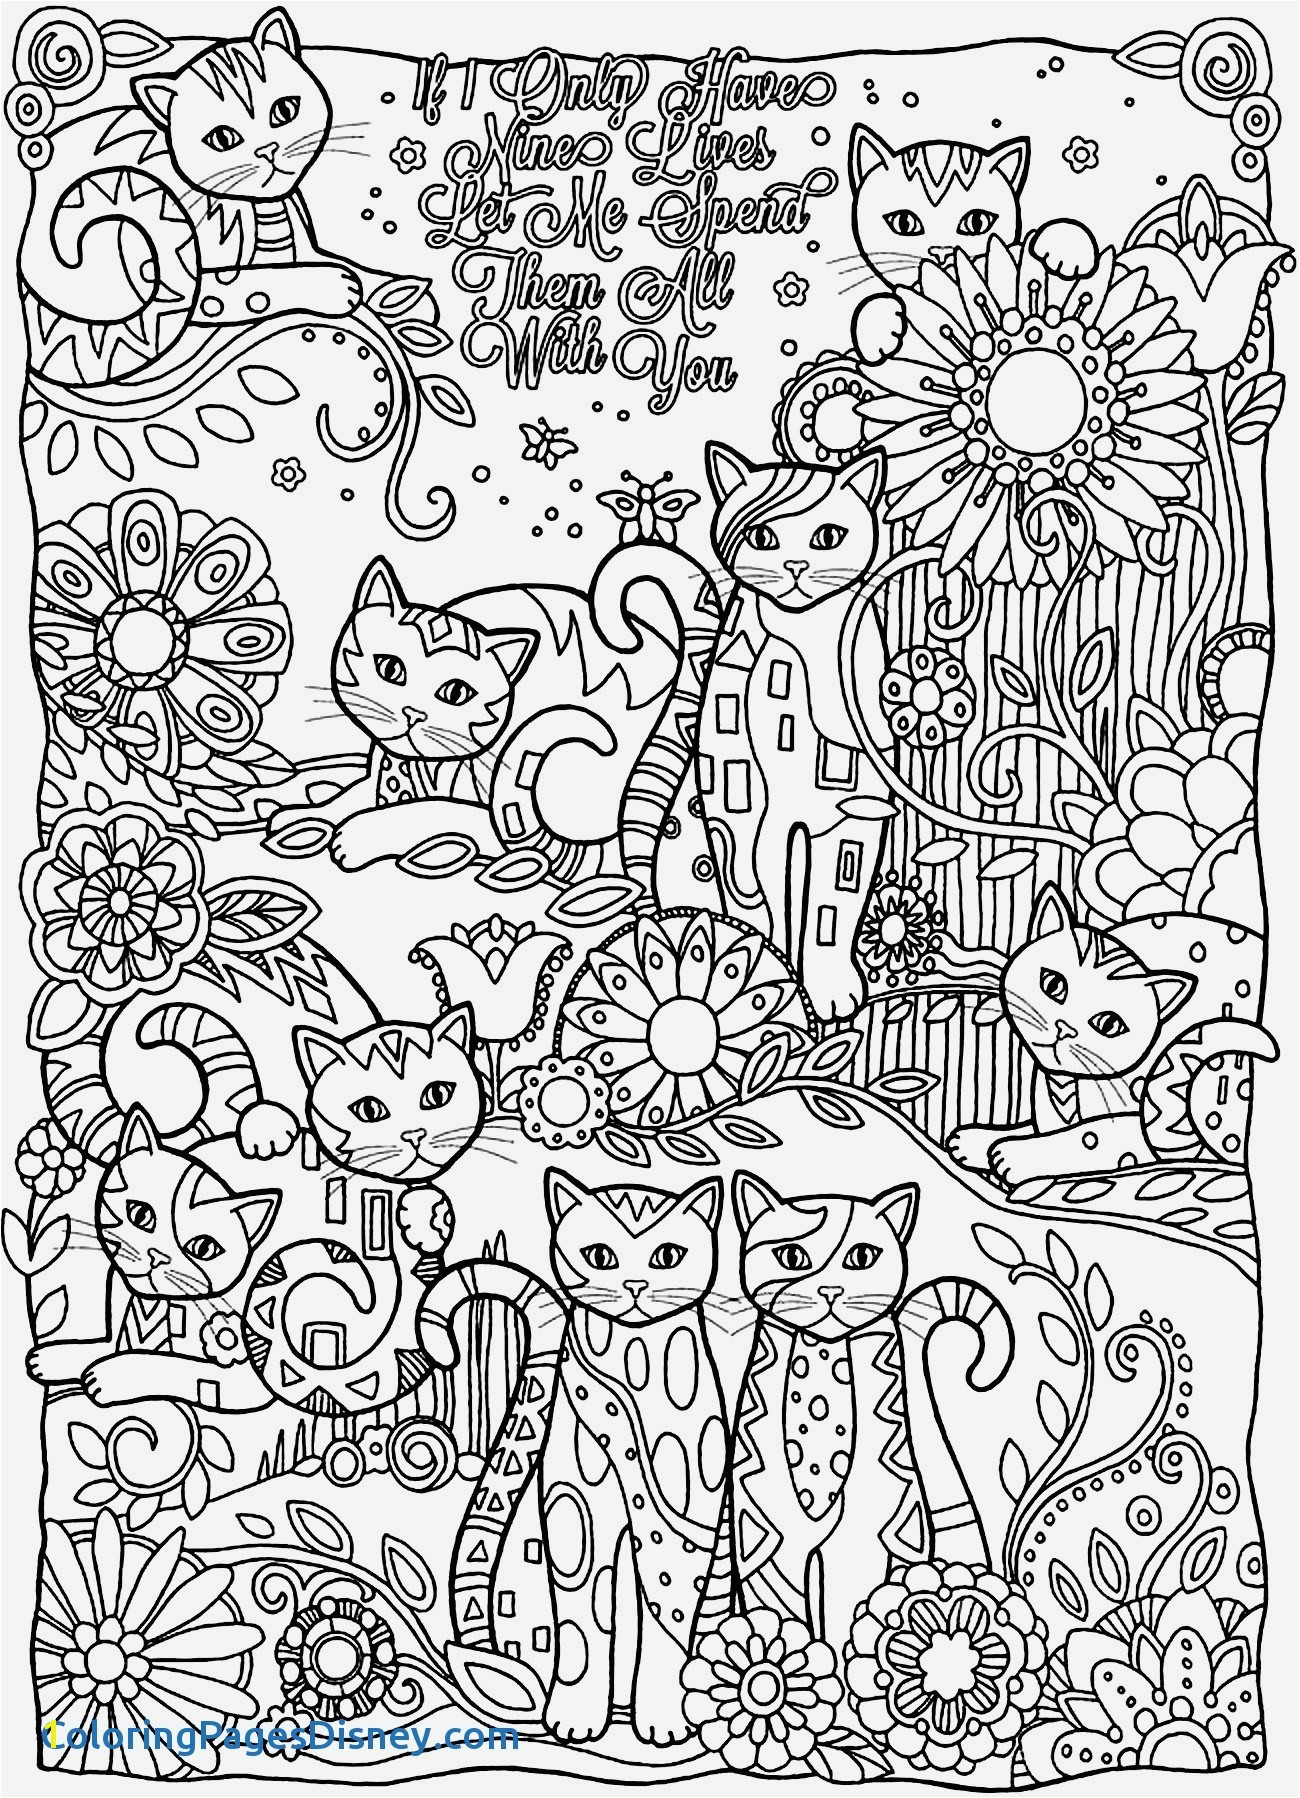 Coloring Pages To Color line For Free For Adults Coloring Games Line For Adults Beautiful Cool Od Dog Coloring